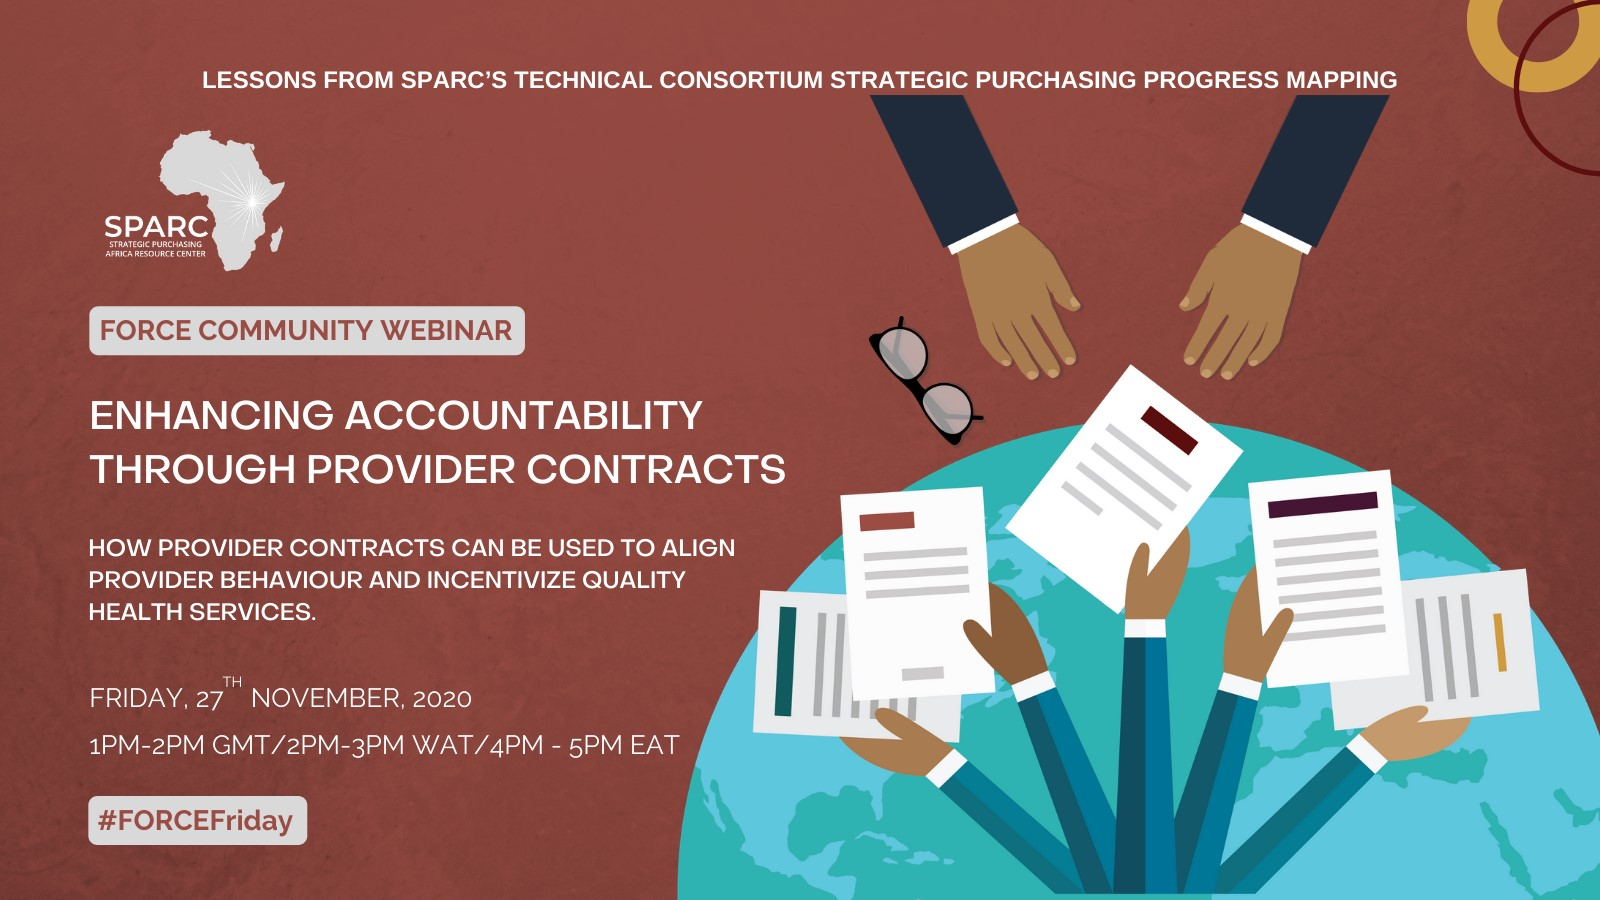 Enhancing Accountability Through Provider Contracts in Sub-Saharan Africa